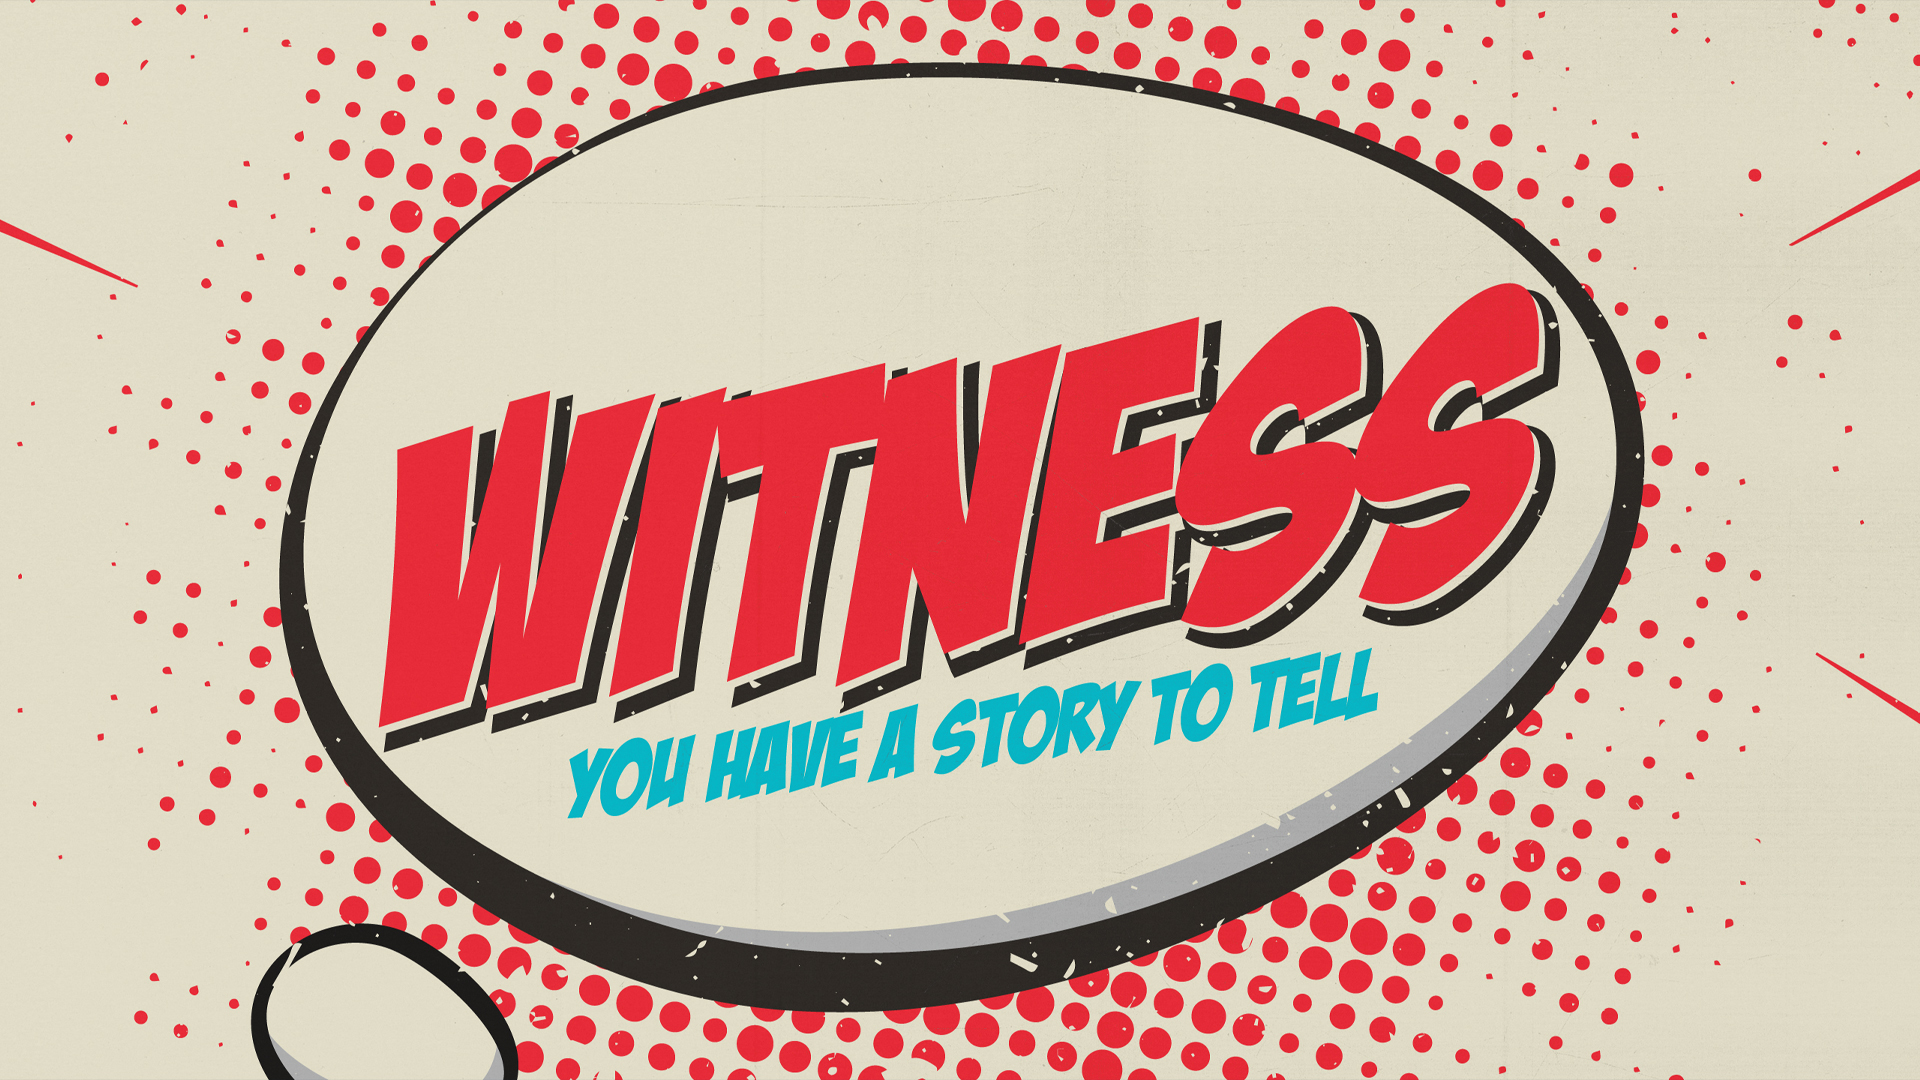 Get Ready - Witness, You Have a Story to Tell